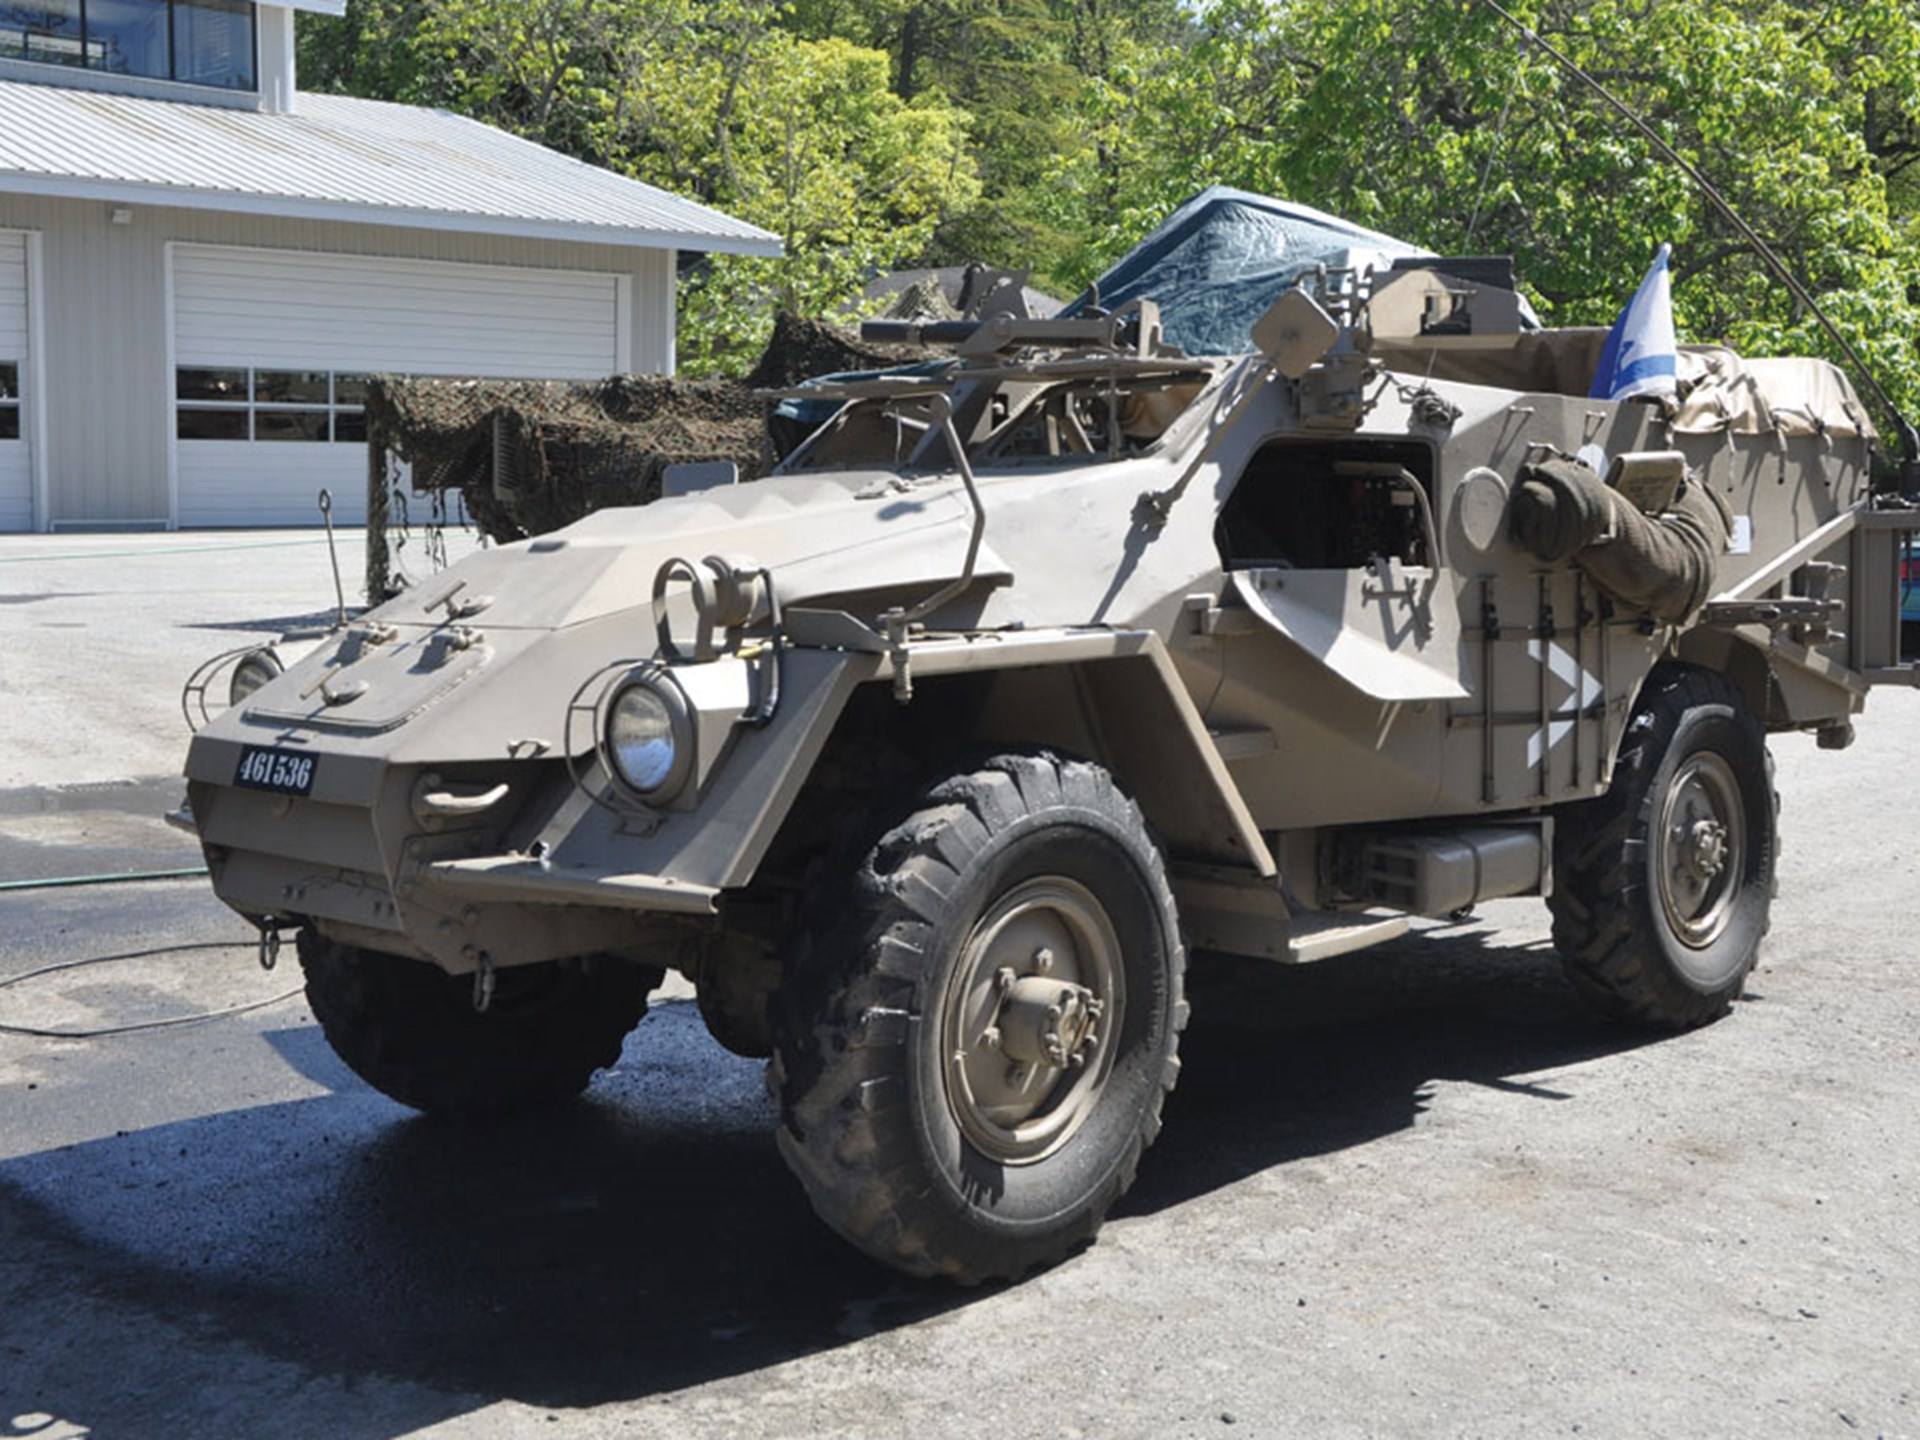 RM Sotheby's - BTR-40 4x4 Armored Personnel Carrier   The